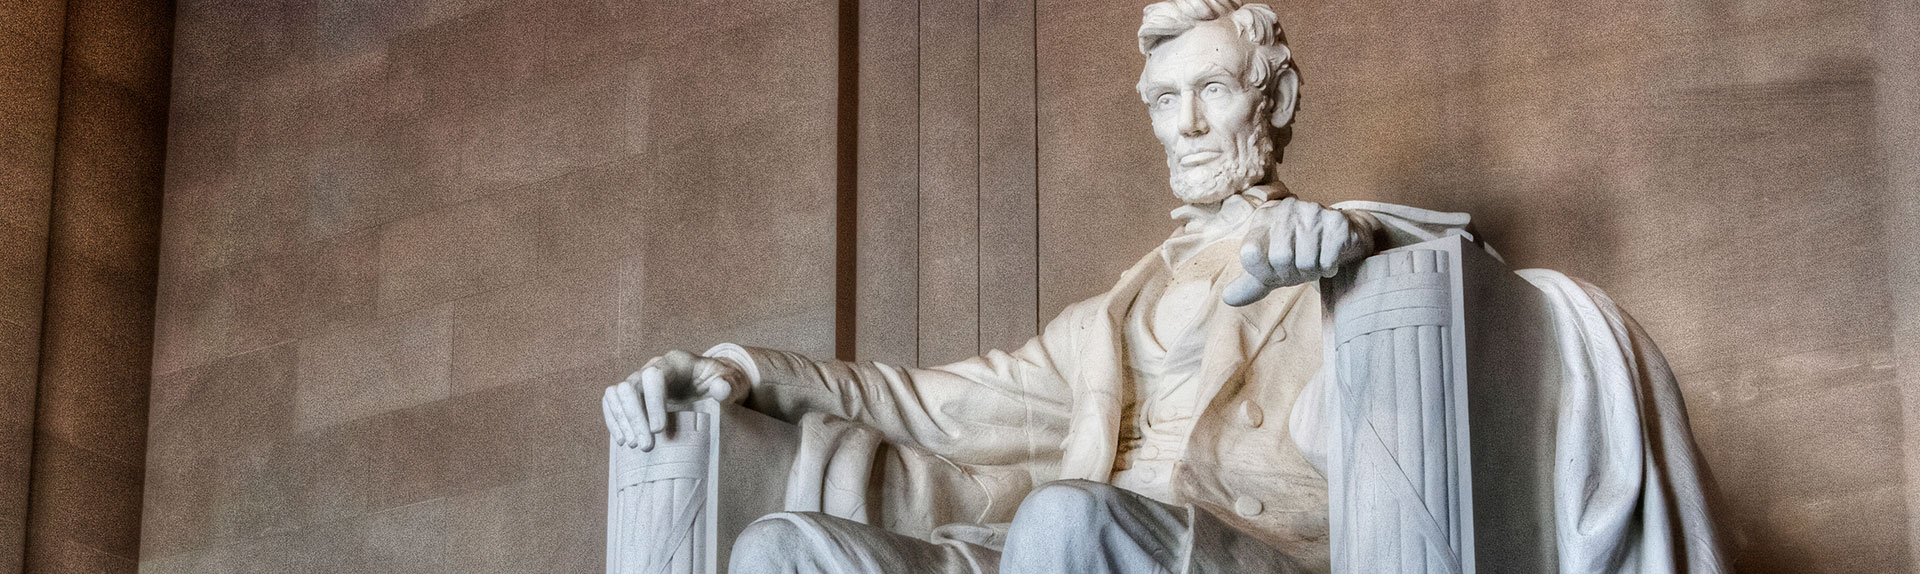 Lincoln Memorial in Washington, District of Columbia